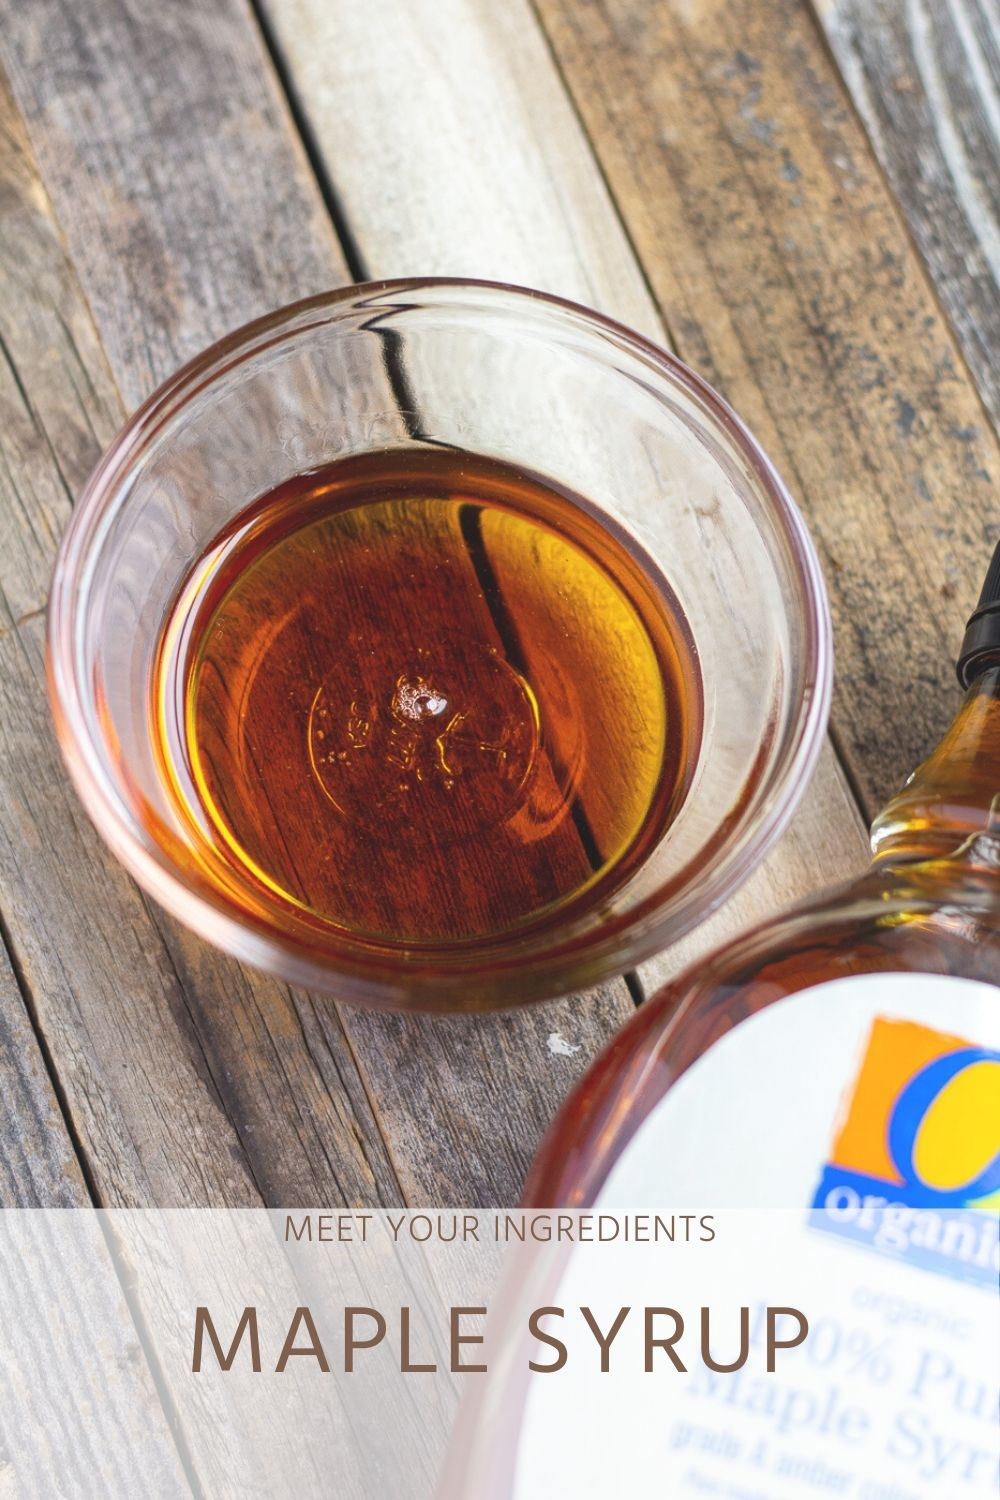 Meet Your Ingredients: Maple Syrup